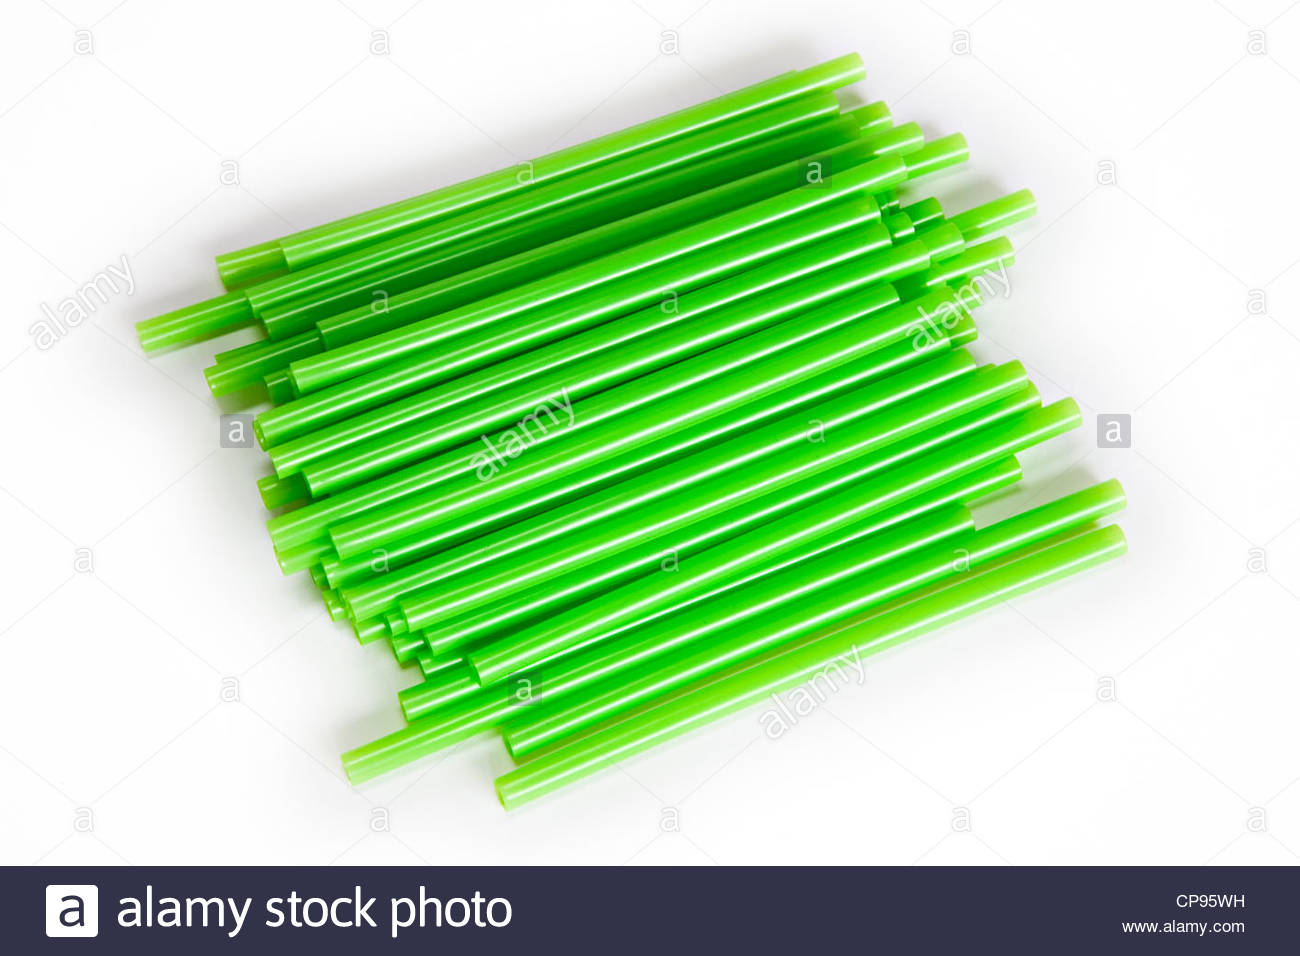 Close-up of green plastic drinking straws isolated on white with copy space - Stock Image